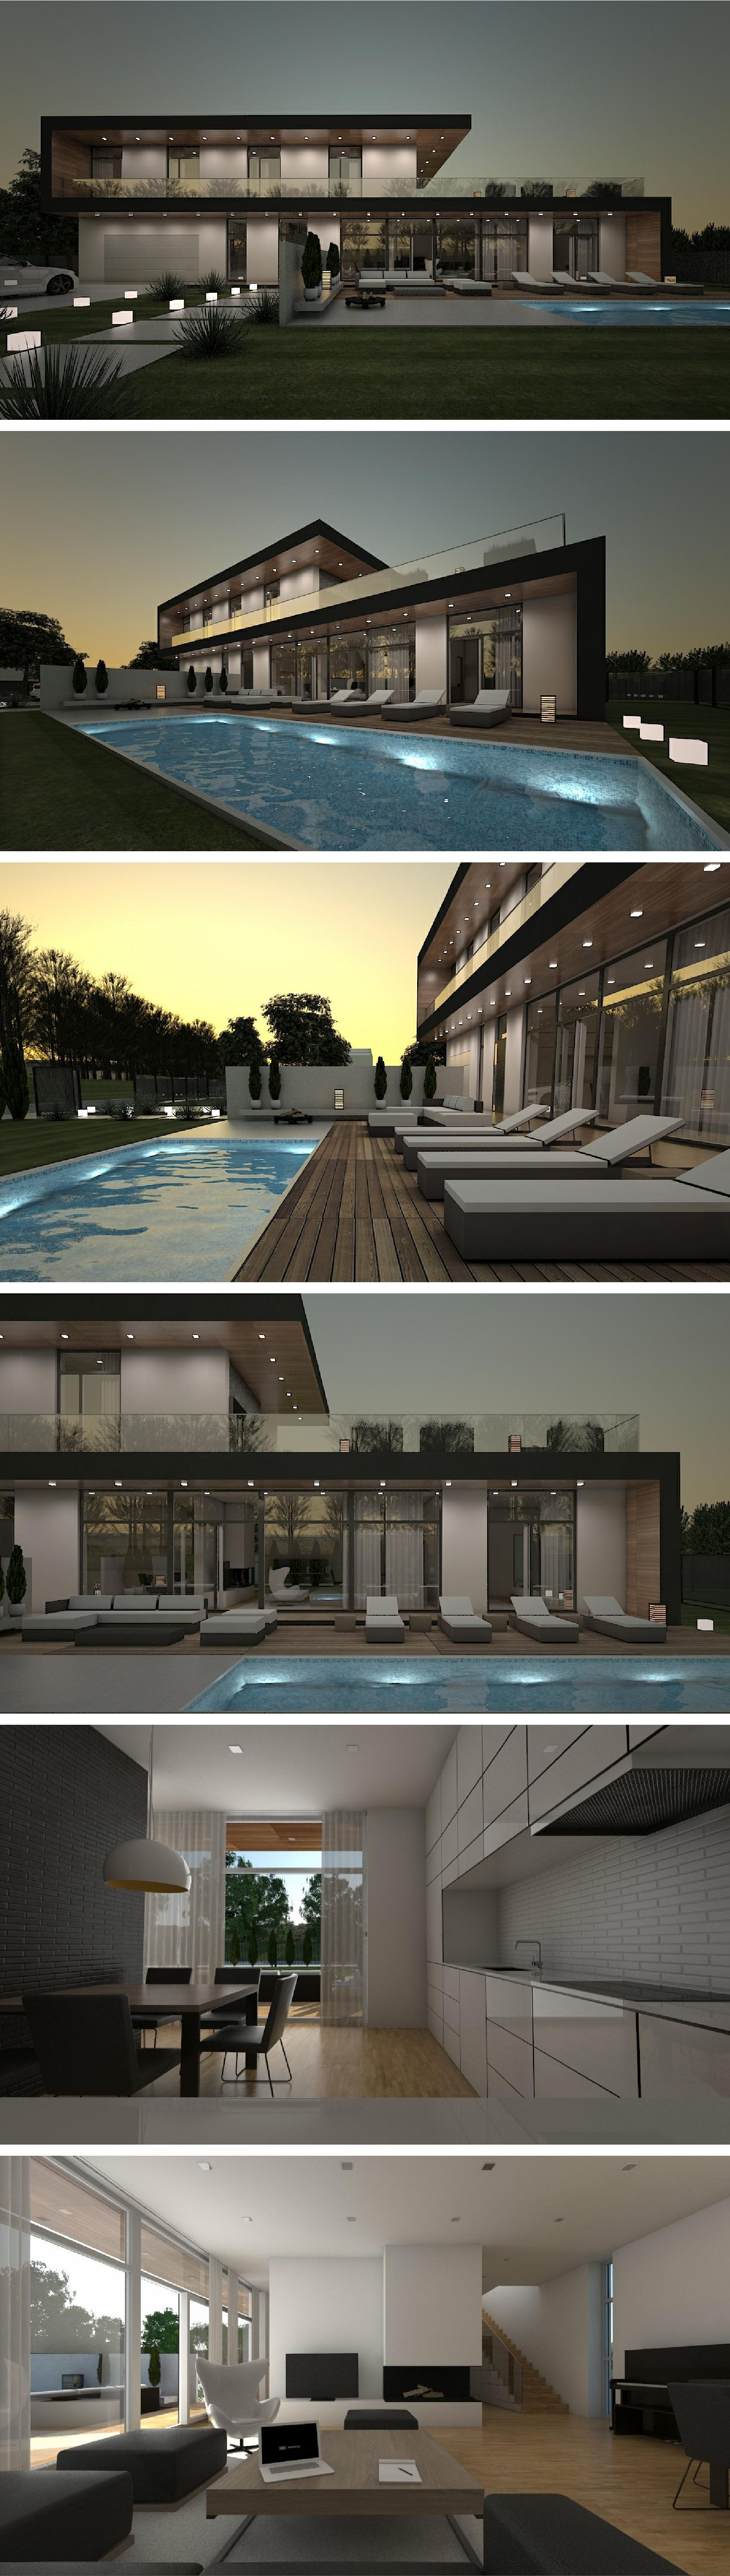 1000+ images about rchitecture ✏ Luxury Homes on Pinterest - ^